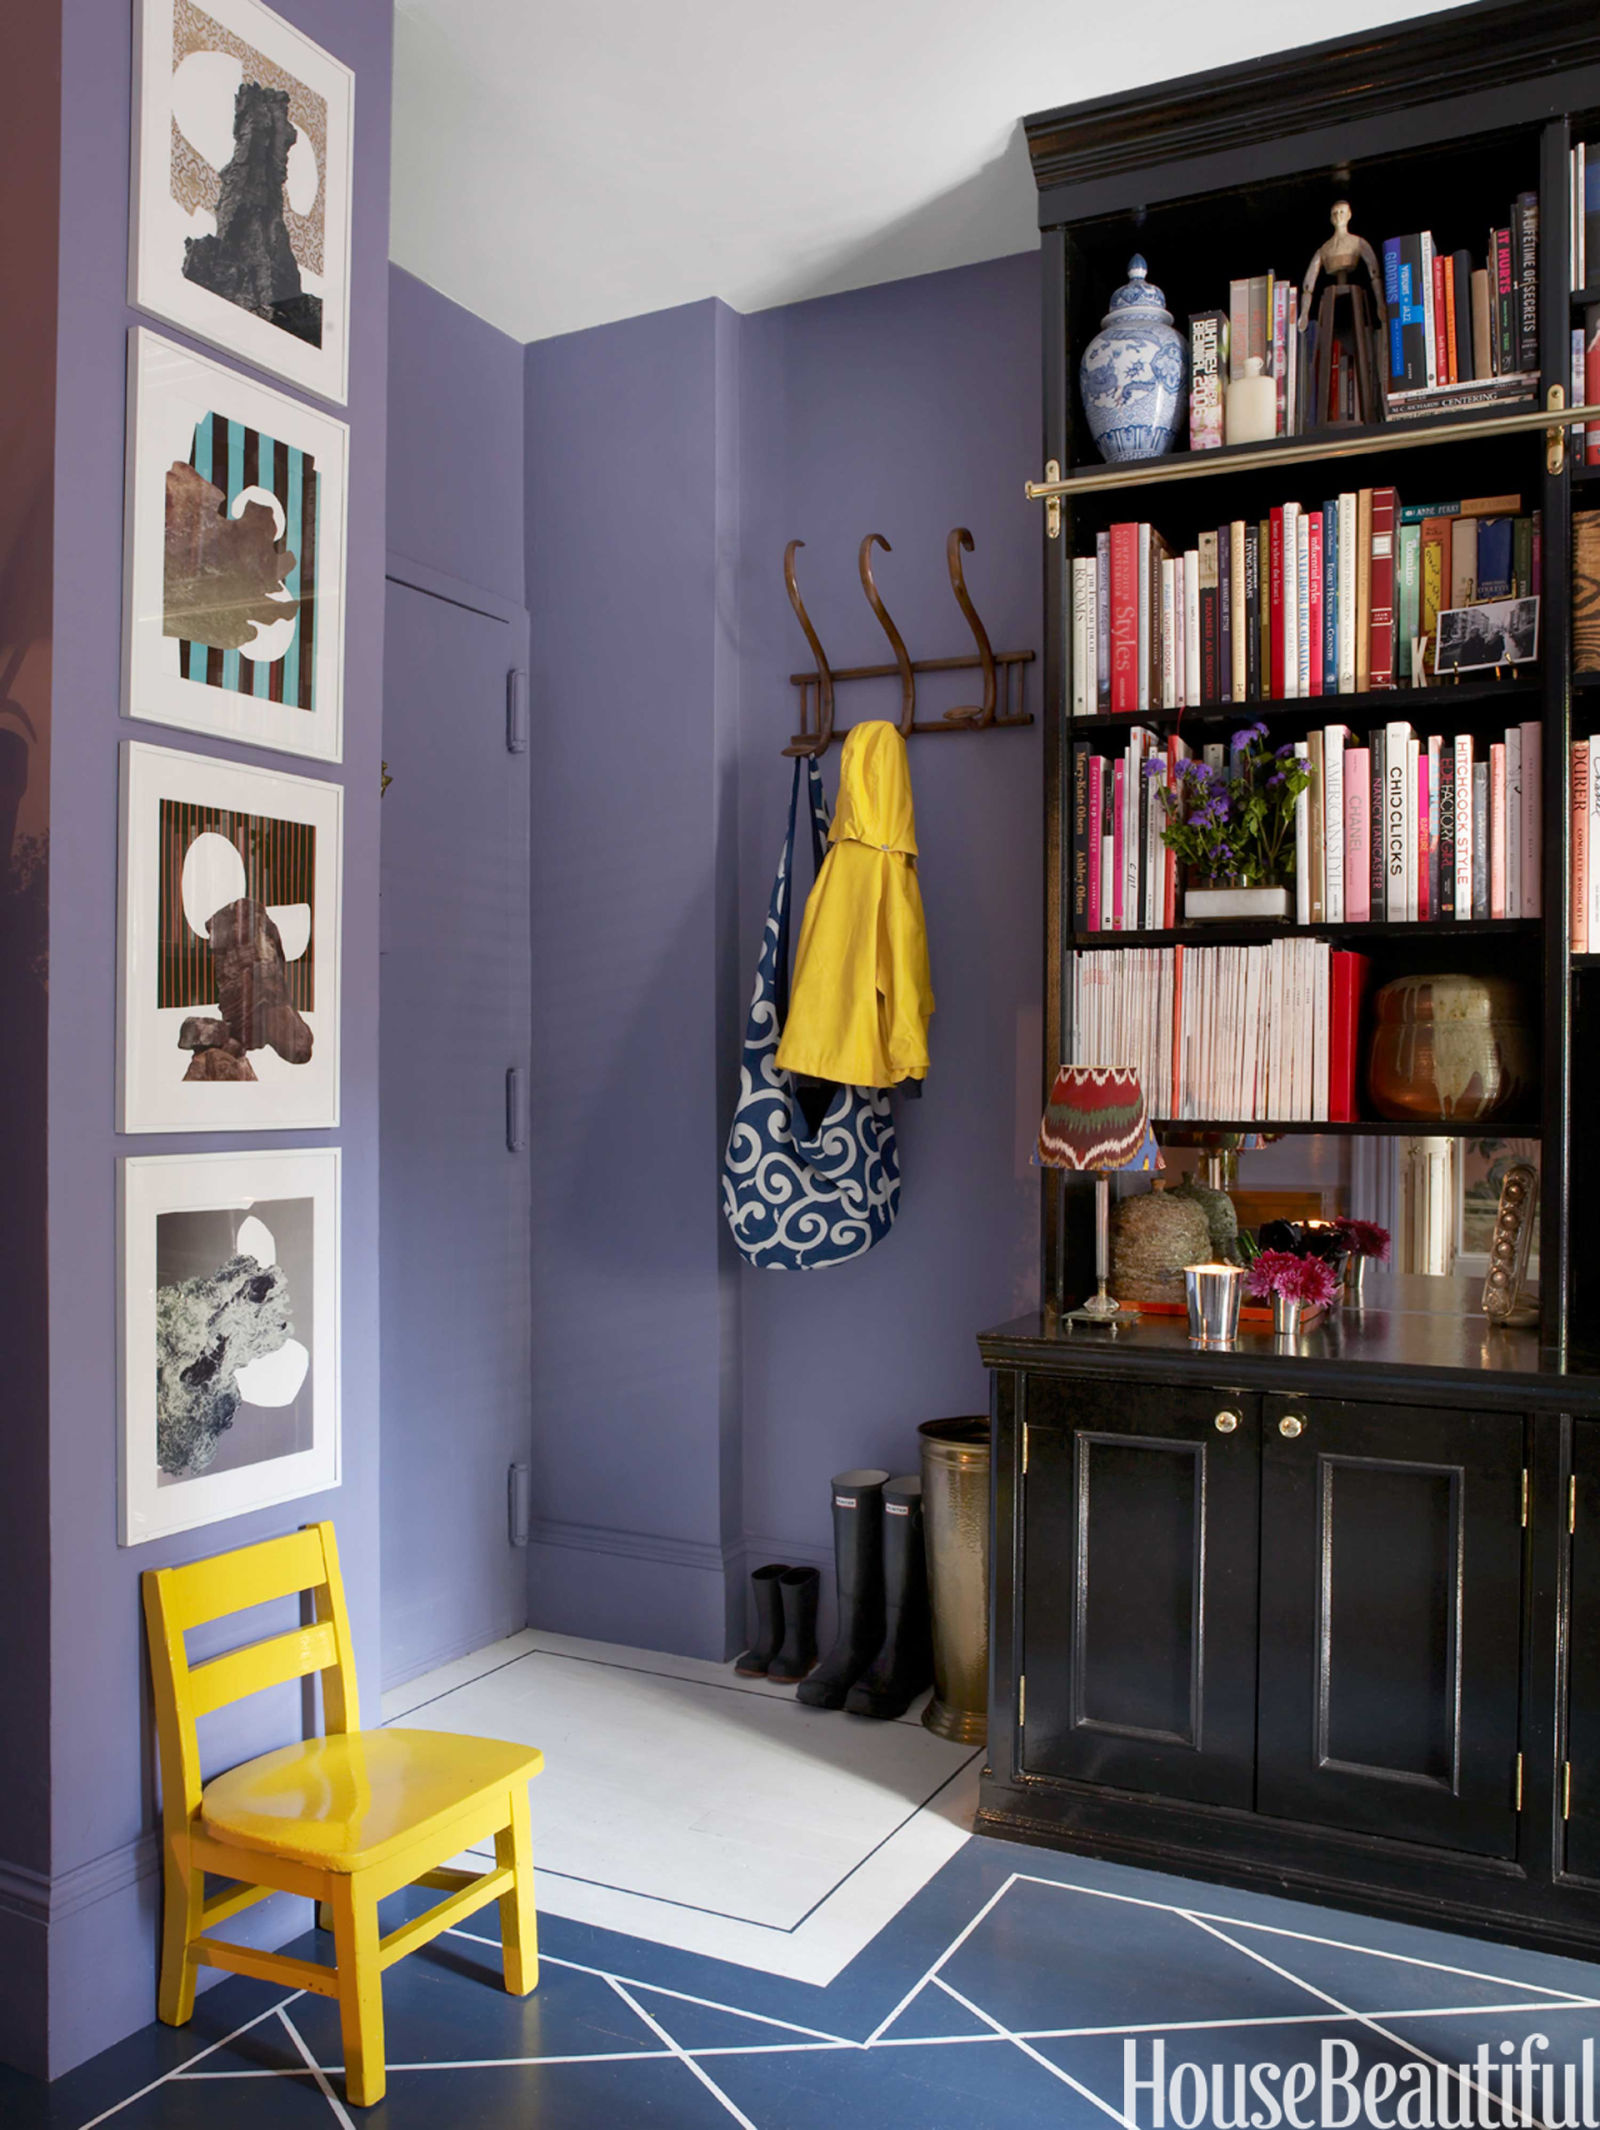 Good Ideas For Small Rooms 11 small space design ideas - how to make the most of a small space